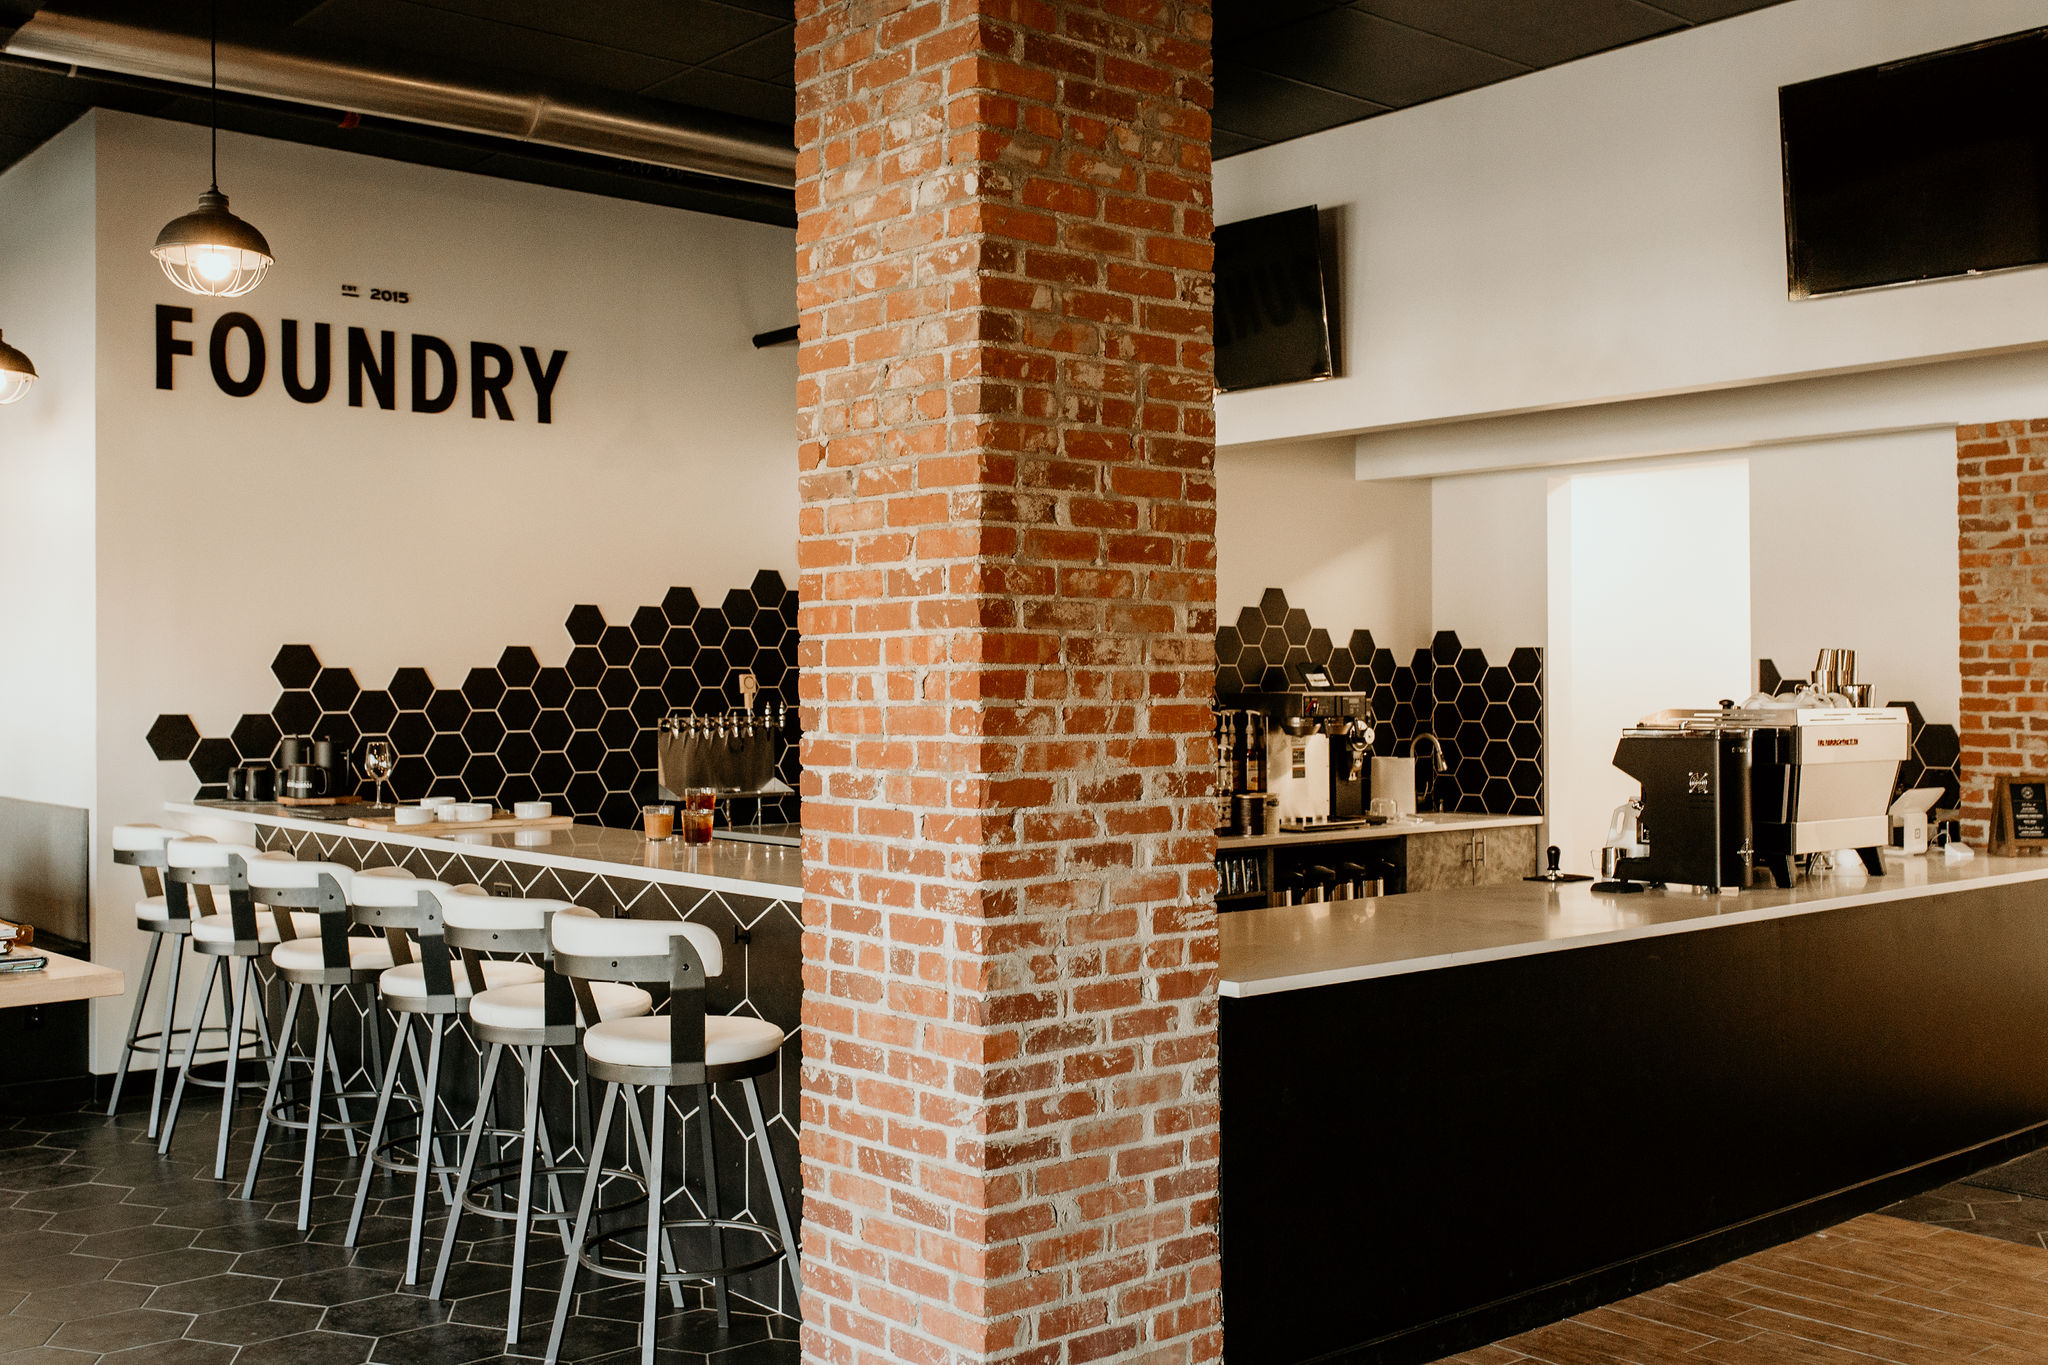 The Foundry Coffee Bar